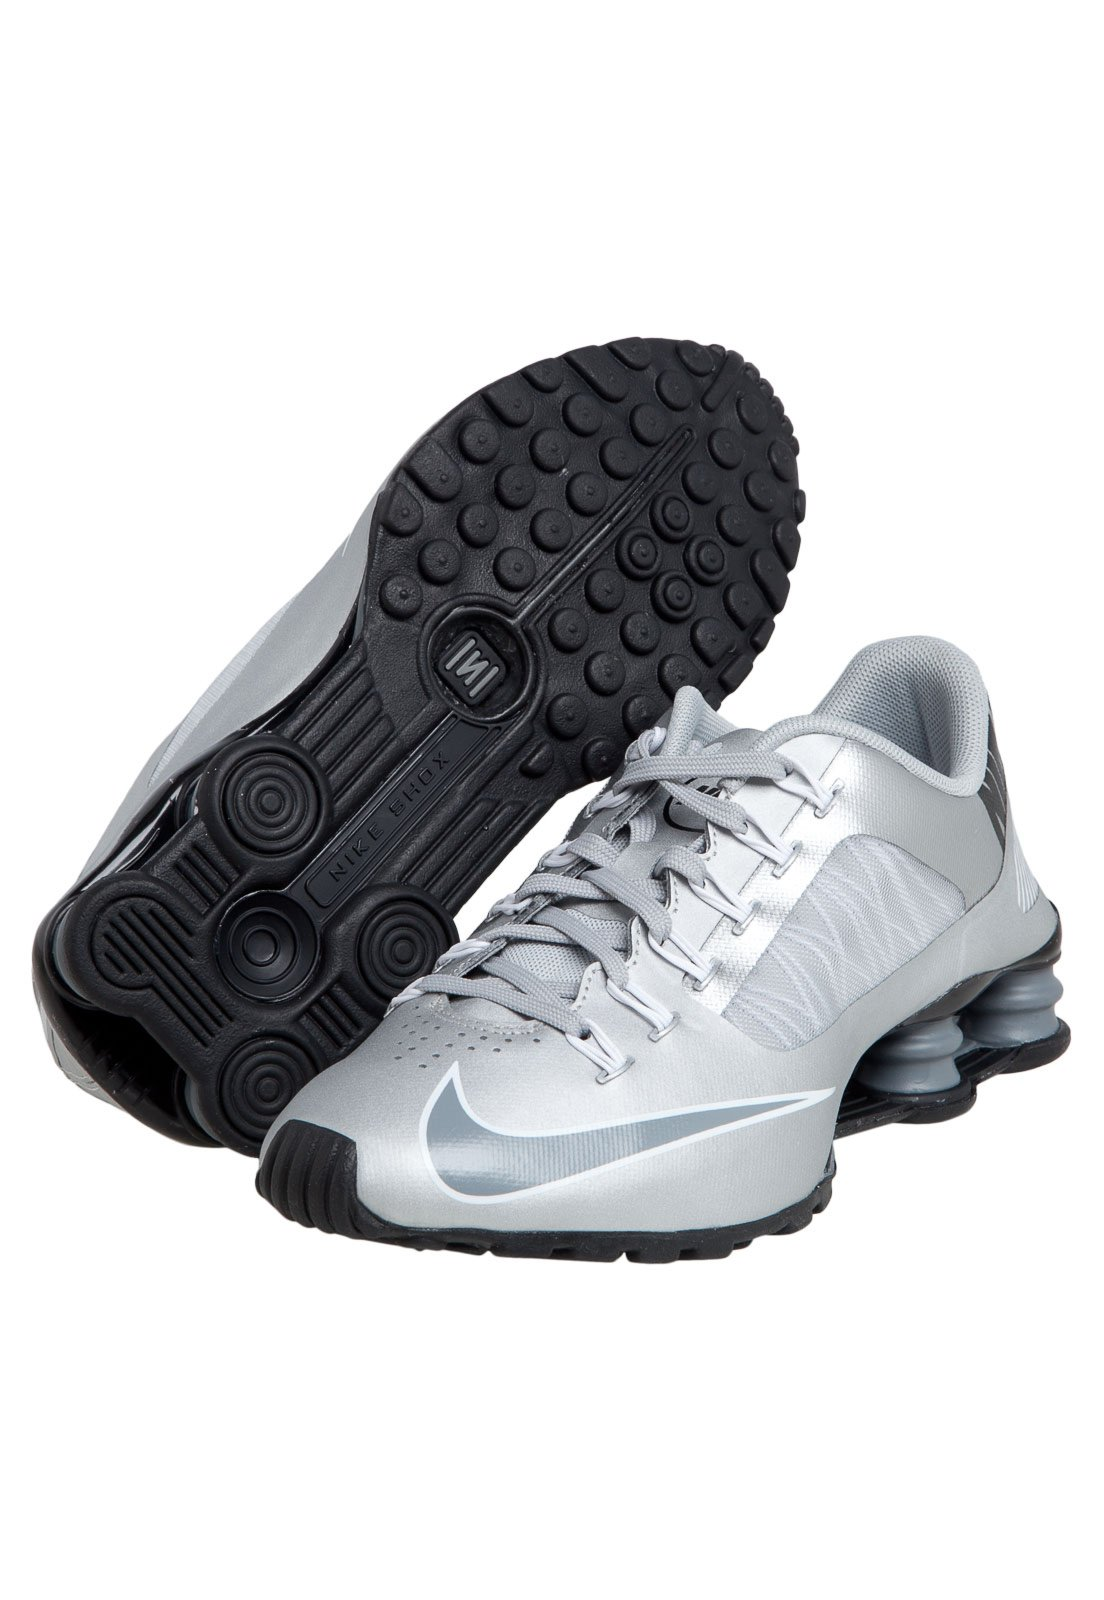 4ccb261b0d ... where can i buy nike shox superfly r4 black and pink e9bdd c5777